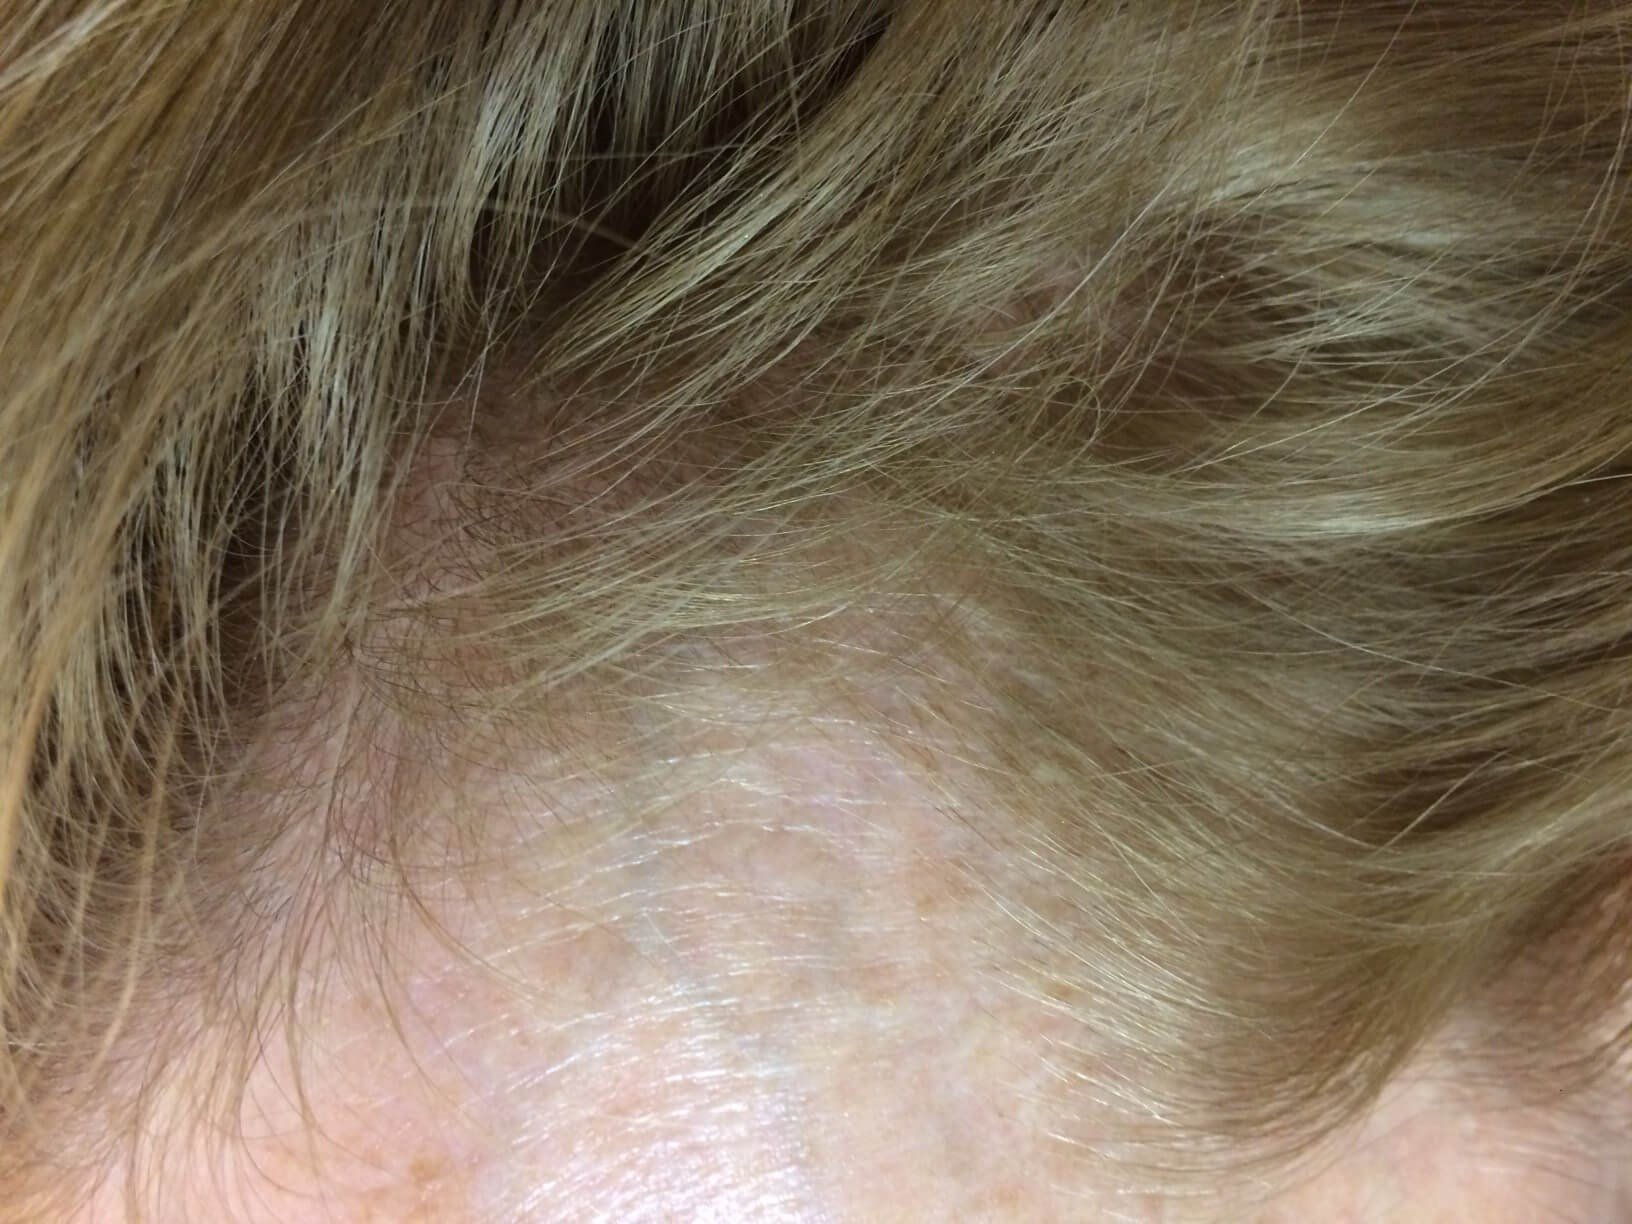 Hair Restoration for Women After 4 Months